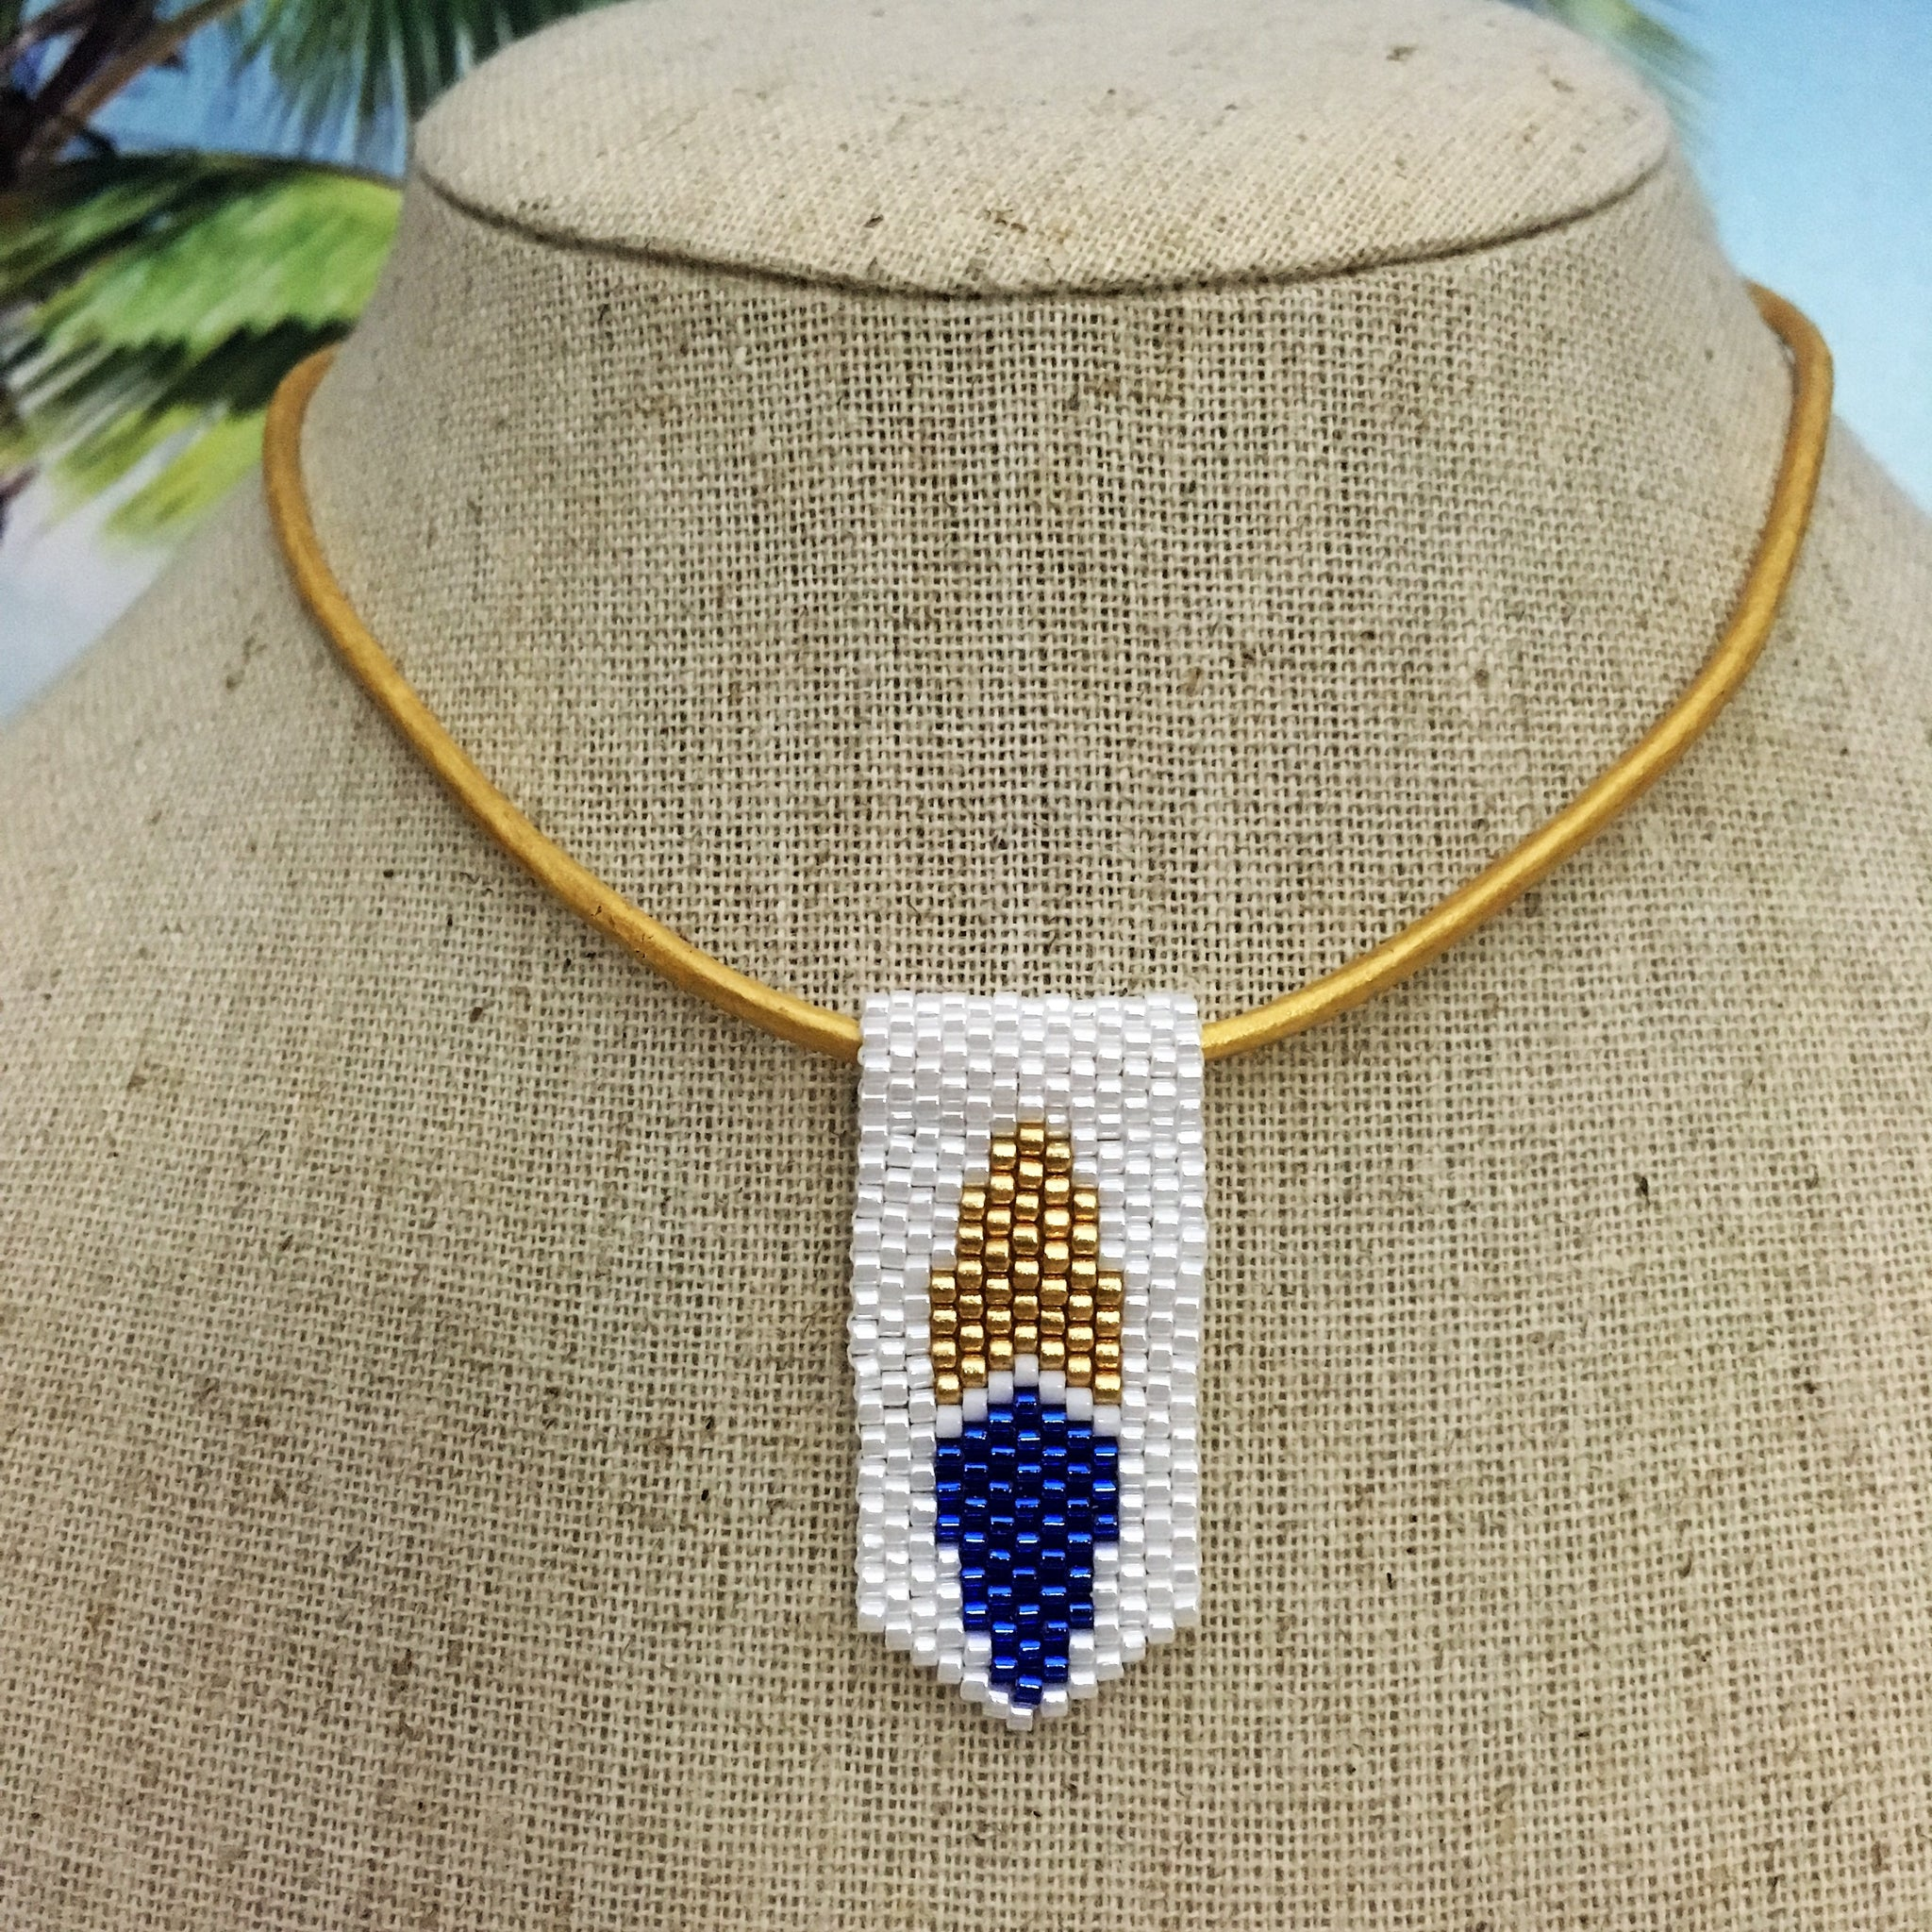 Handmade beaded mini surfboard pendant on leather cord blue white yellow gold